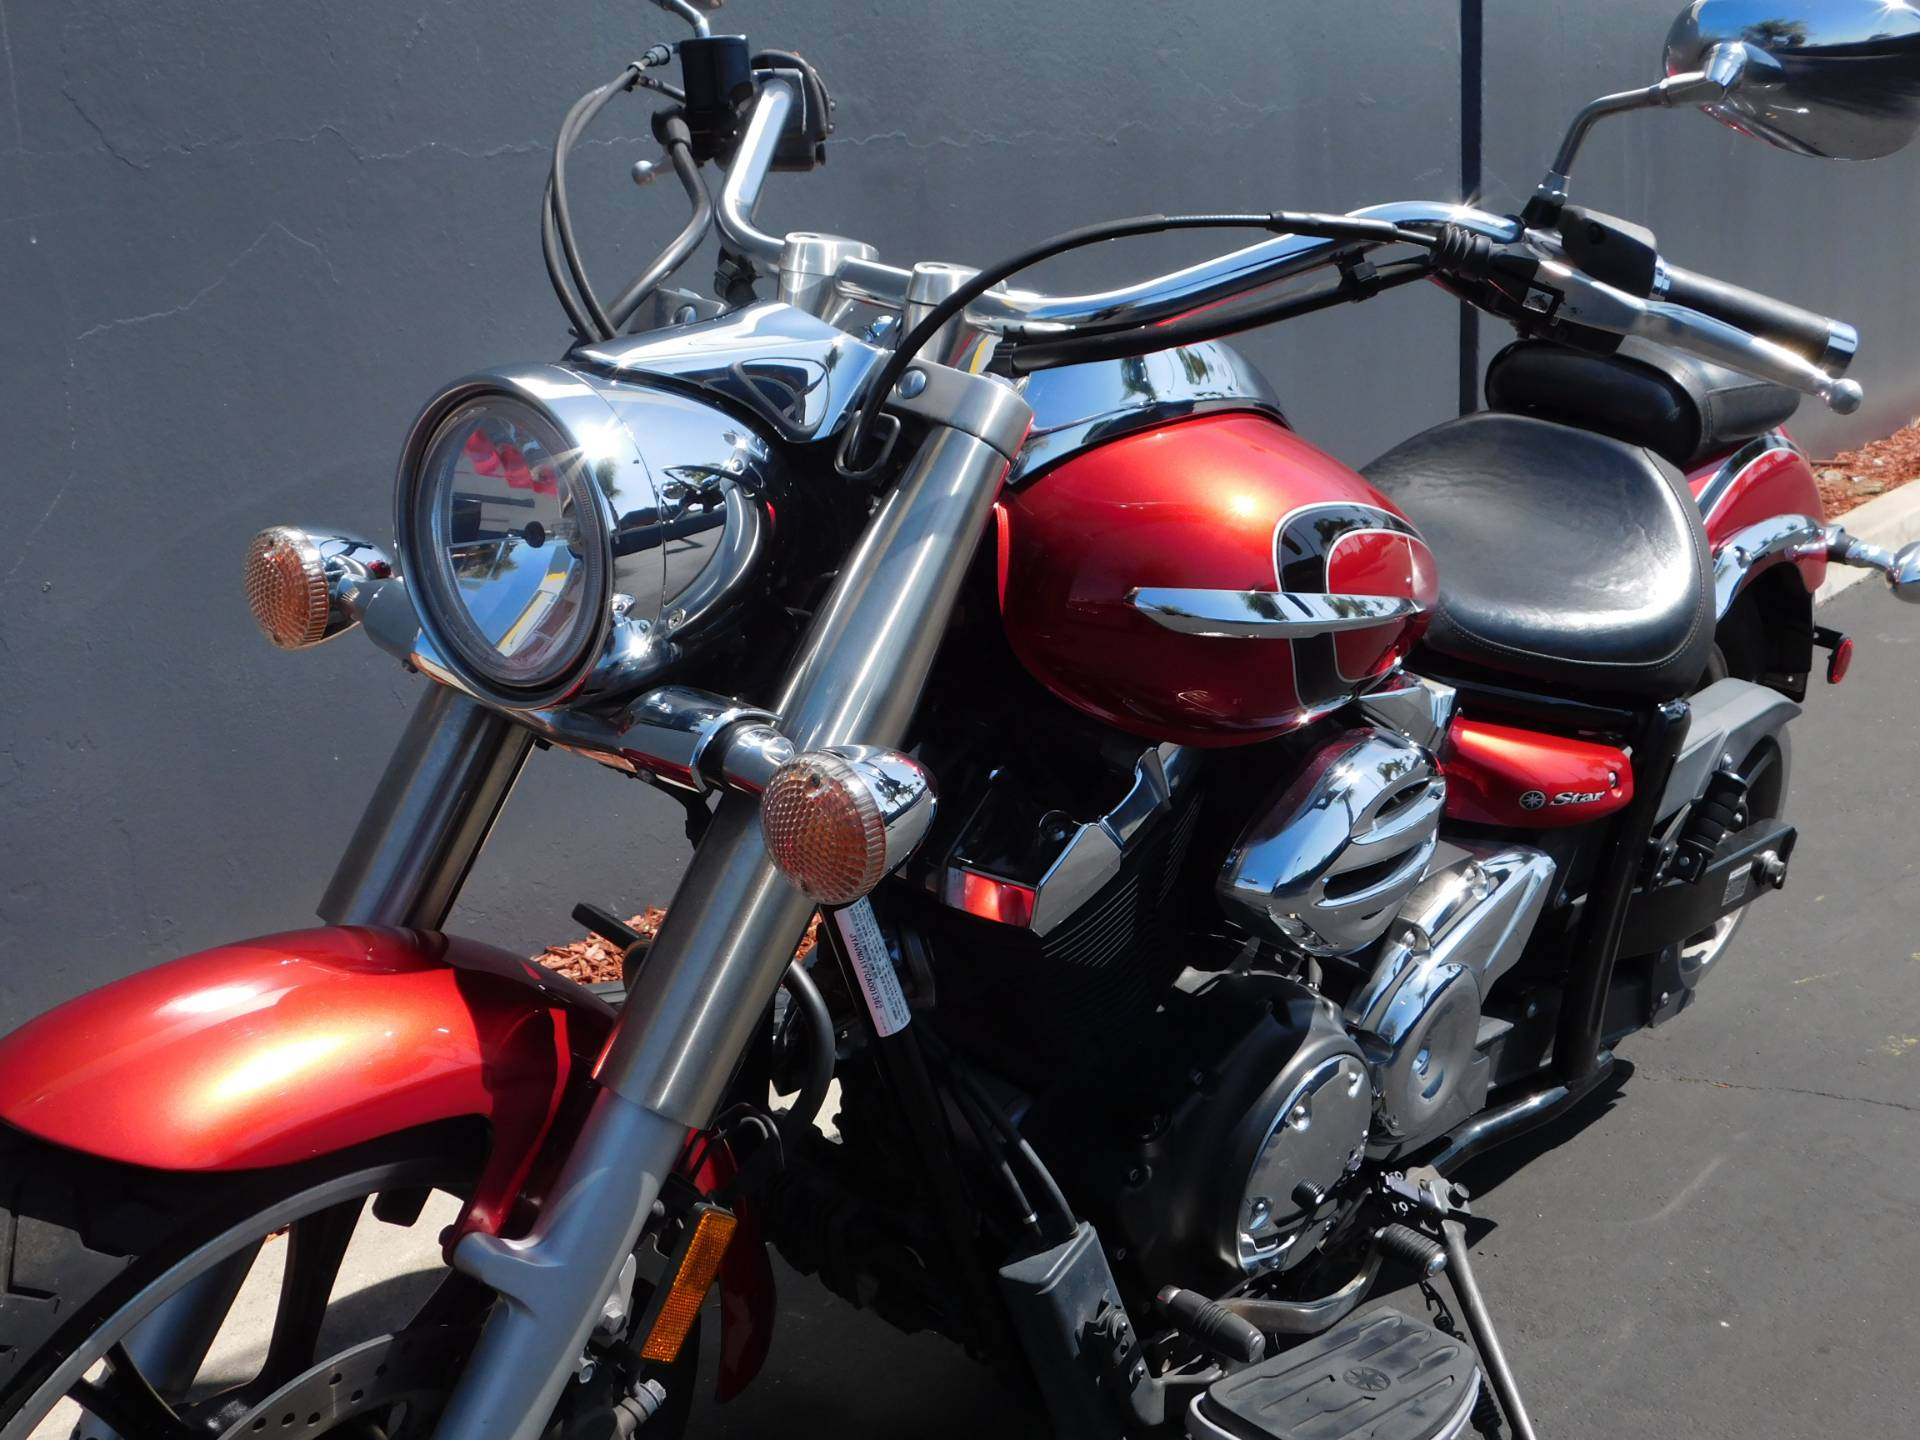 2012 Yamaha V Star 950 in Chula Vista, California - Photo 17